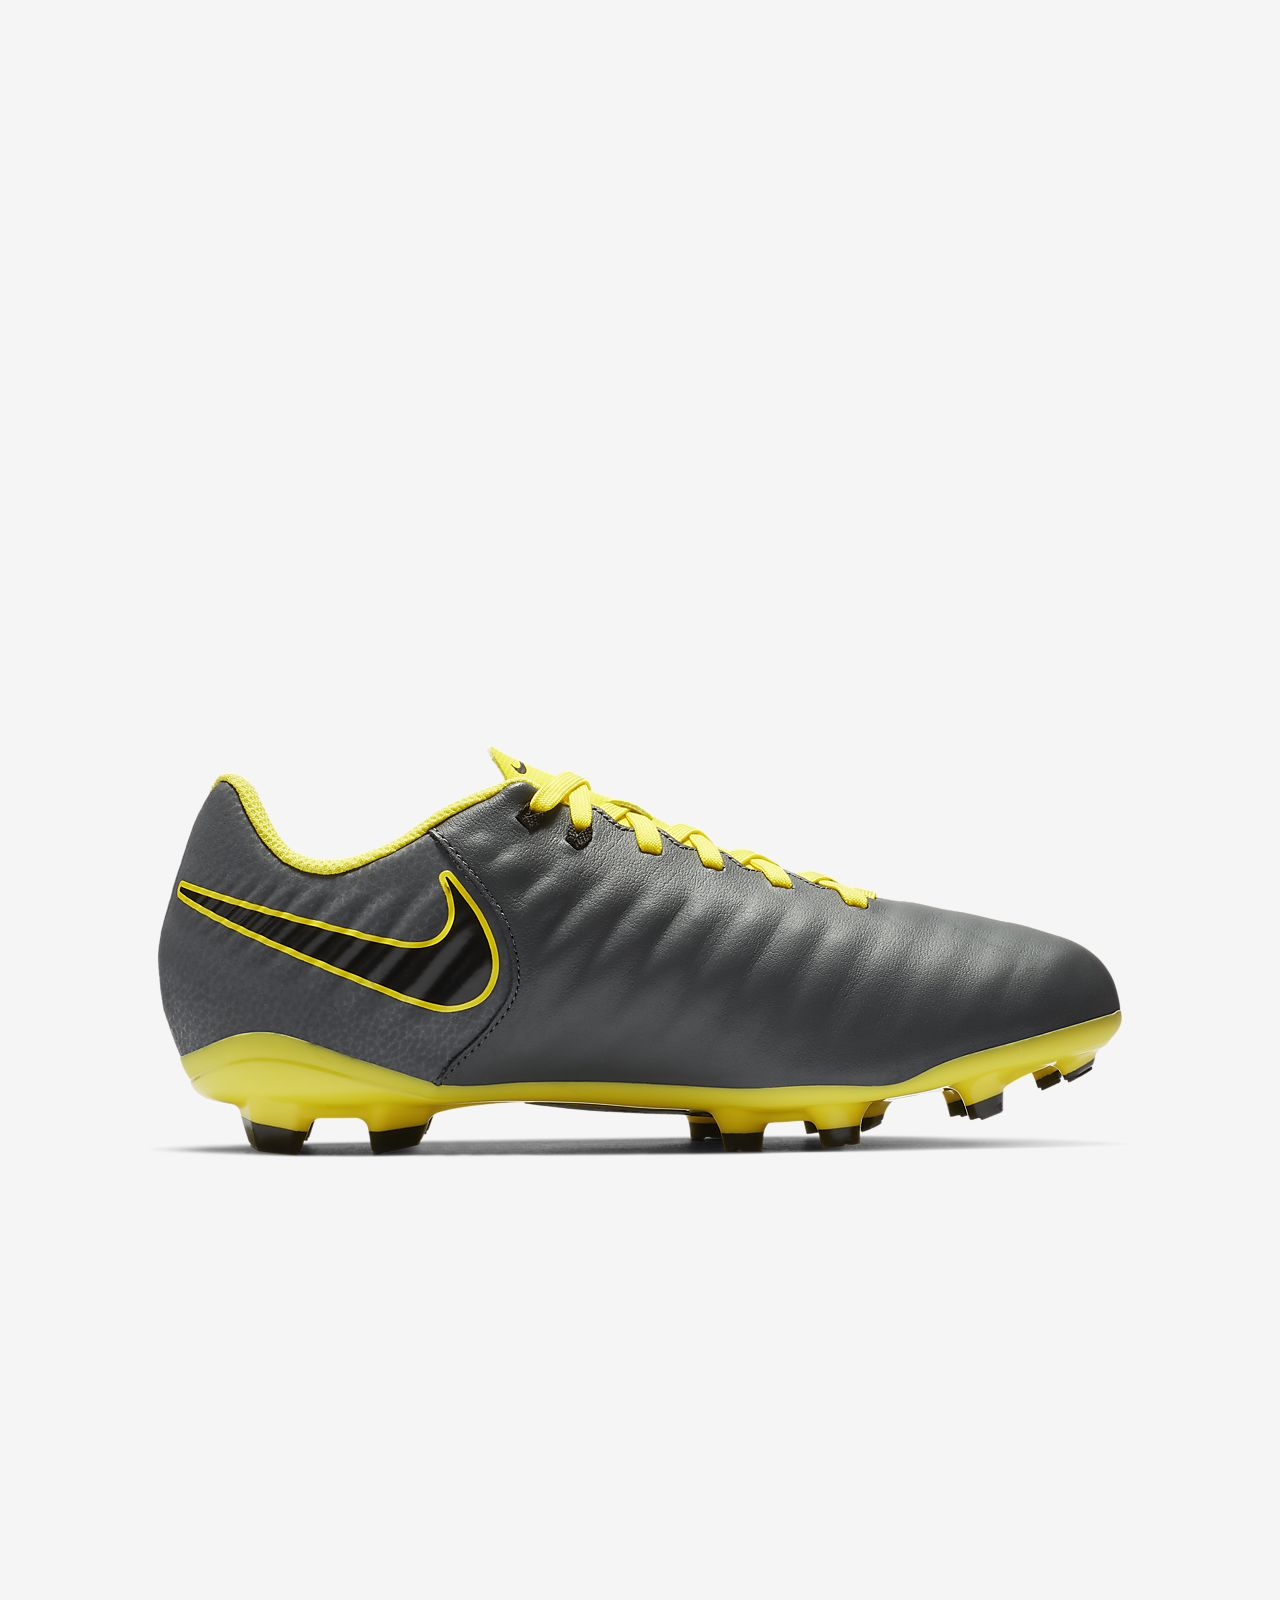 80b10d1854b04 ... Nike Jr. Legend 7 Academy FG Younger Older Kids  Firm-Ground Football